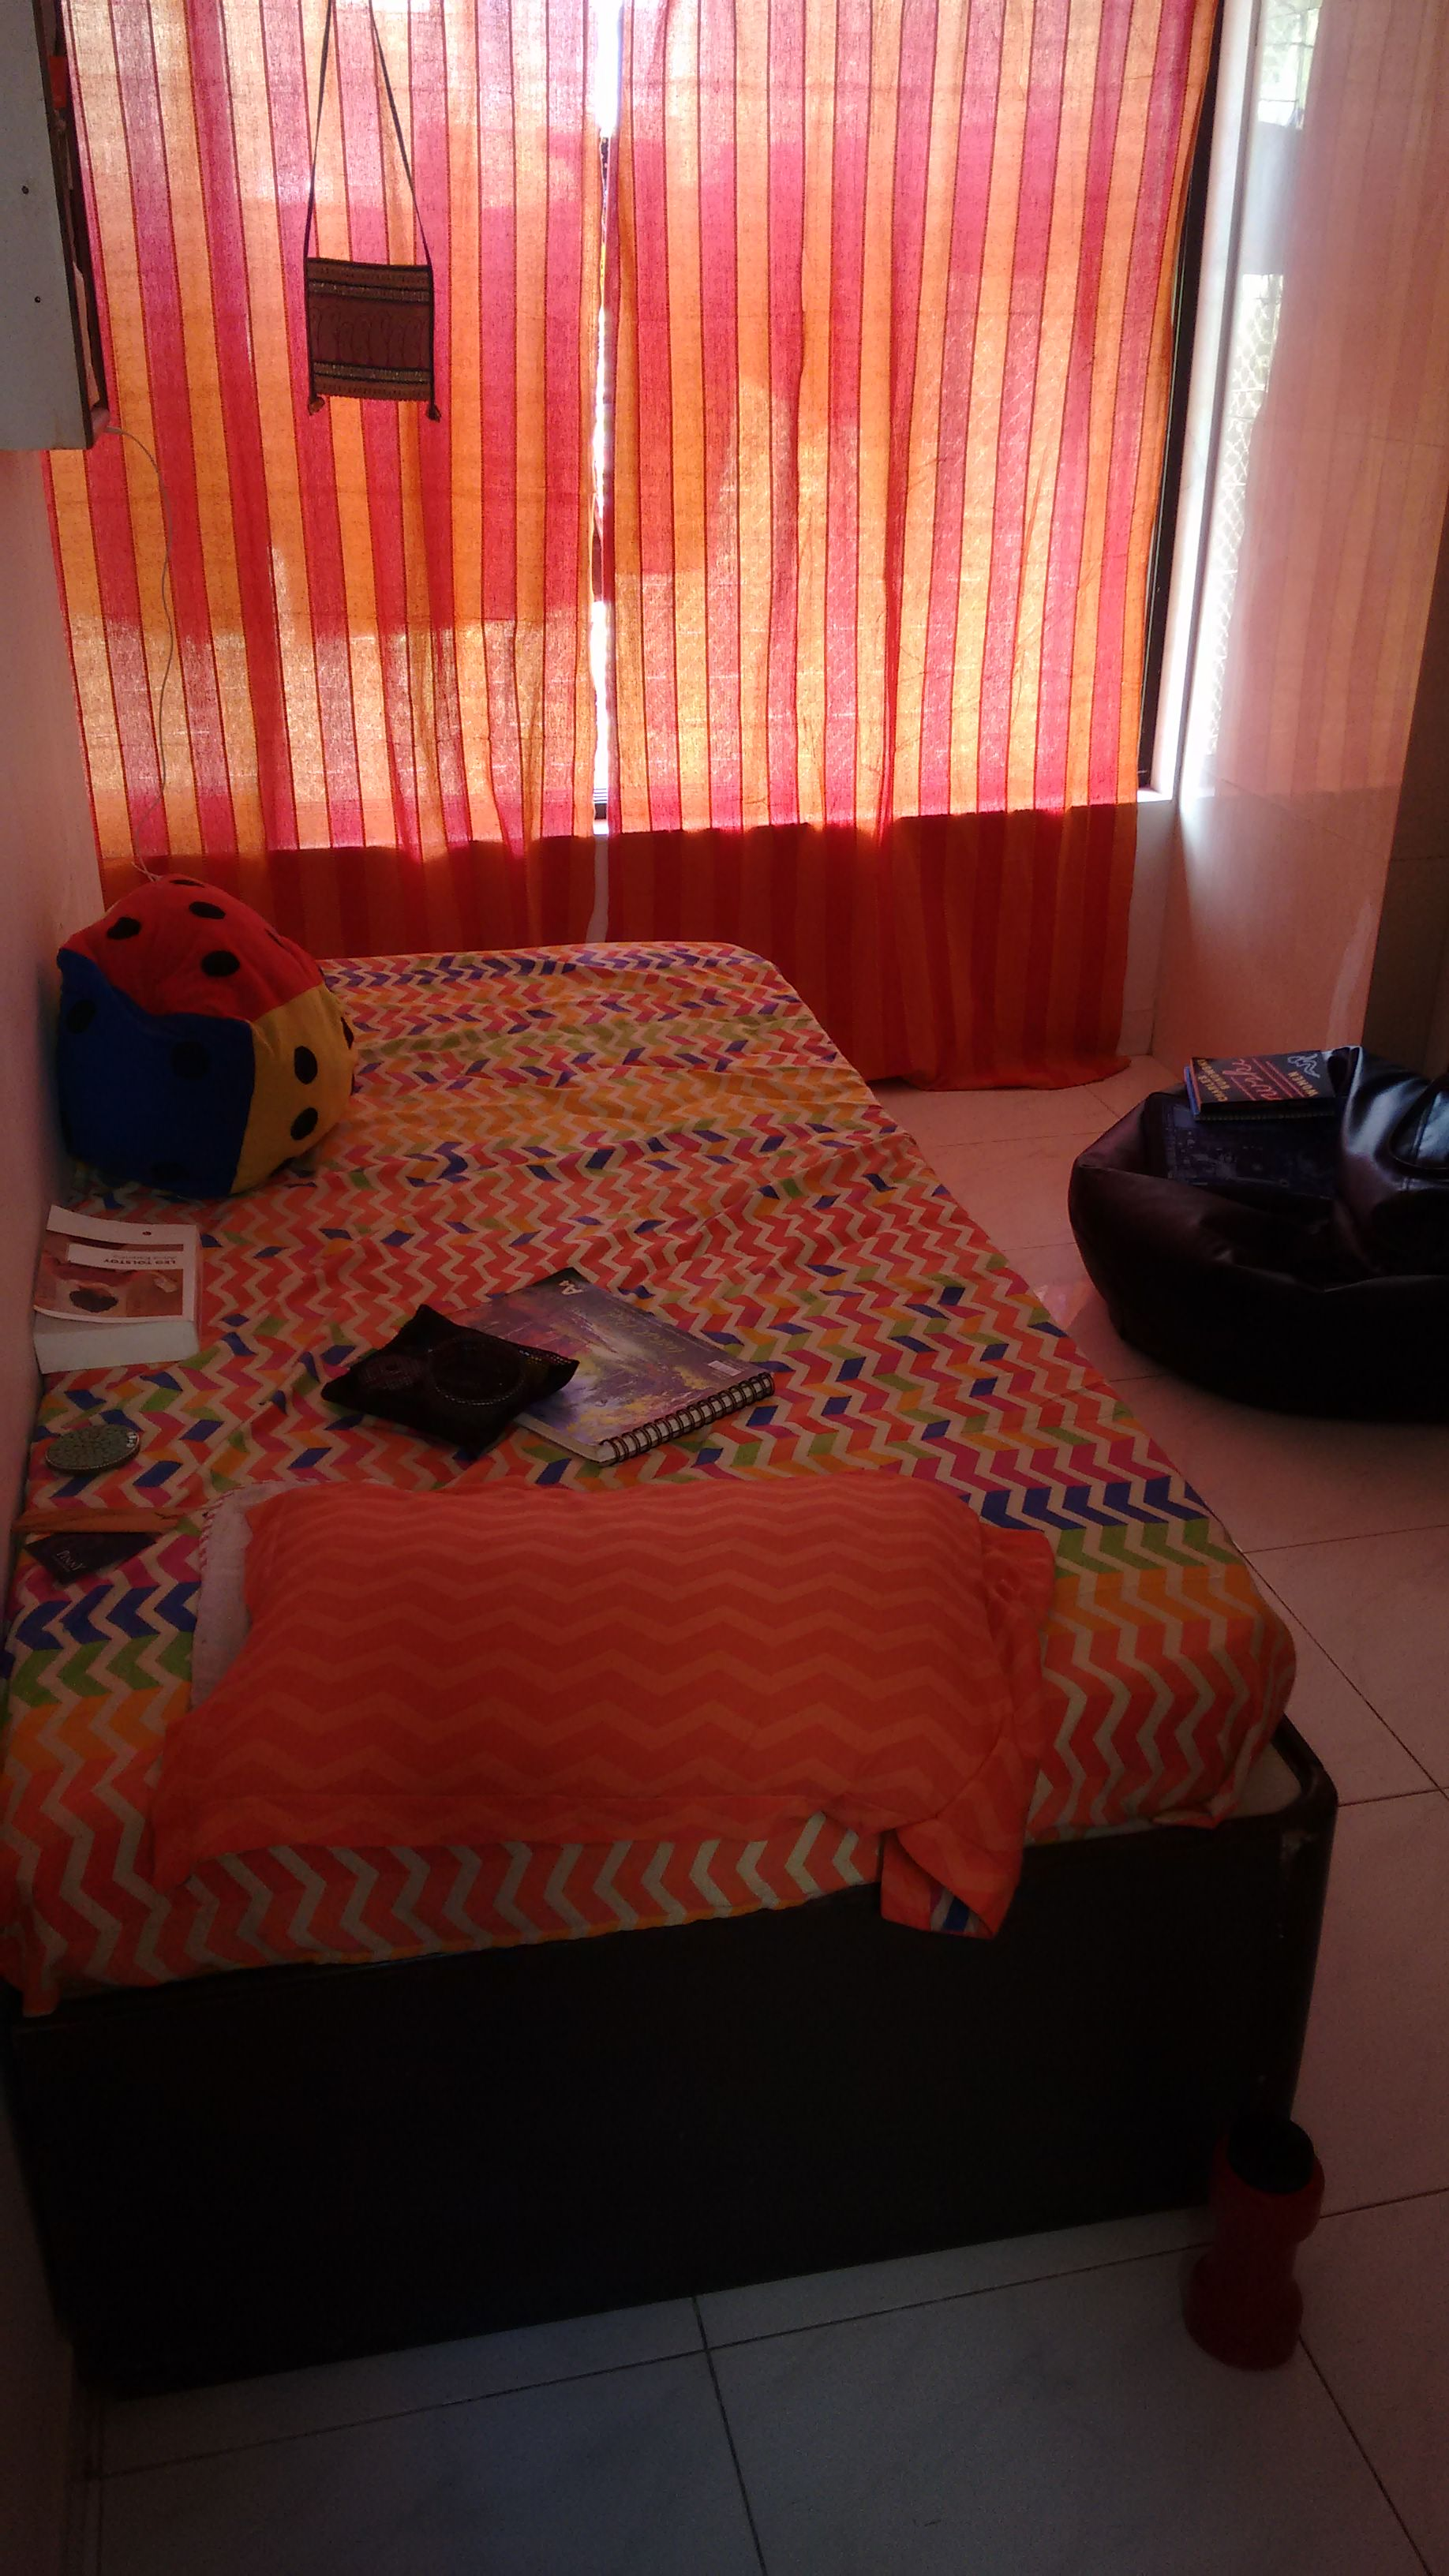 My very orange room with a messy bed and scattered books | Chai High is an Indian Fashion Blog started by Shivani Krishan